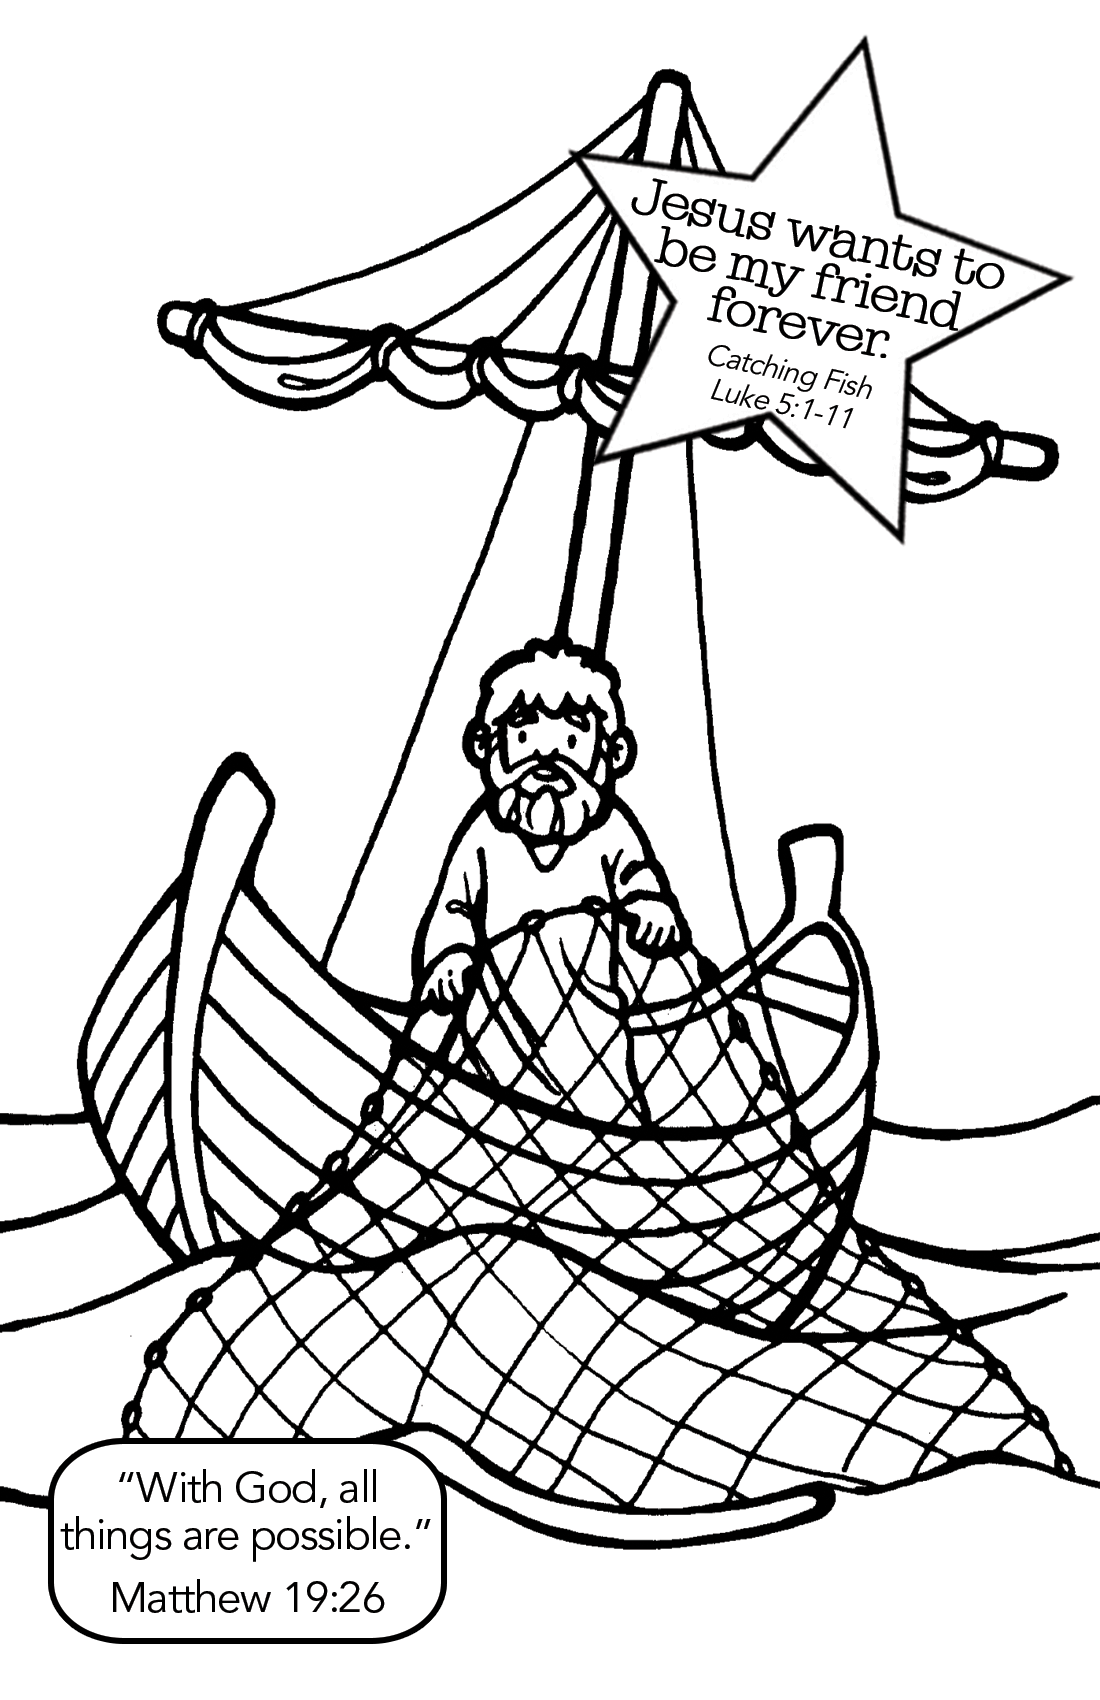 jesus disciples coloring page - fishing with jesus coloring page yahoo image search